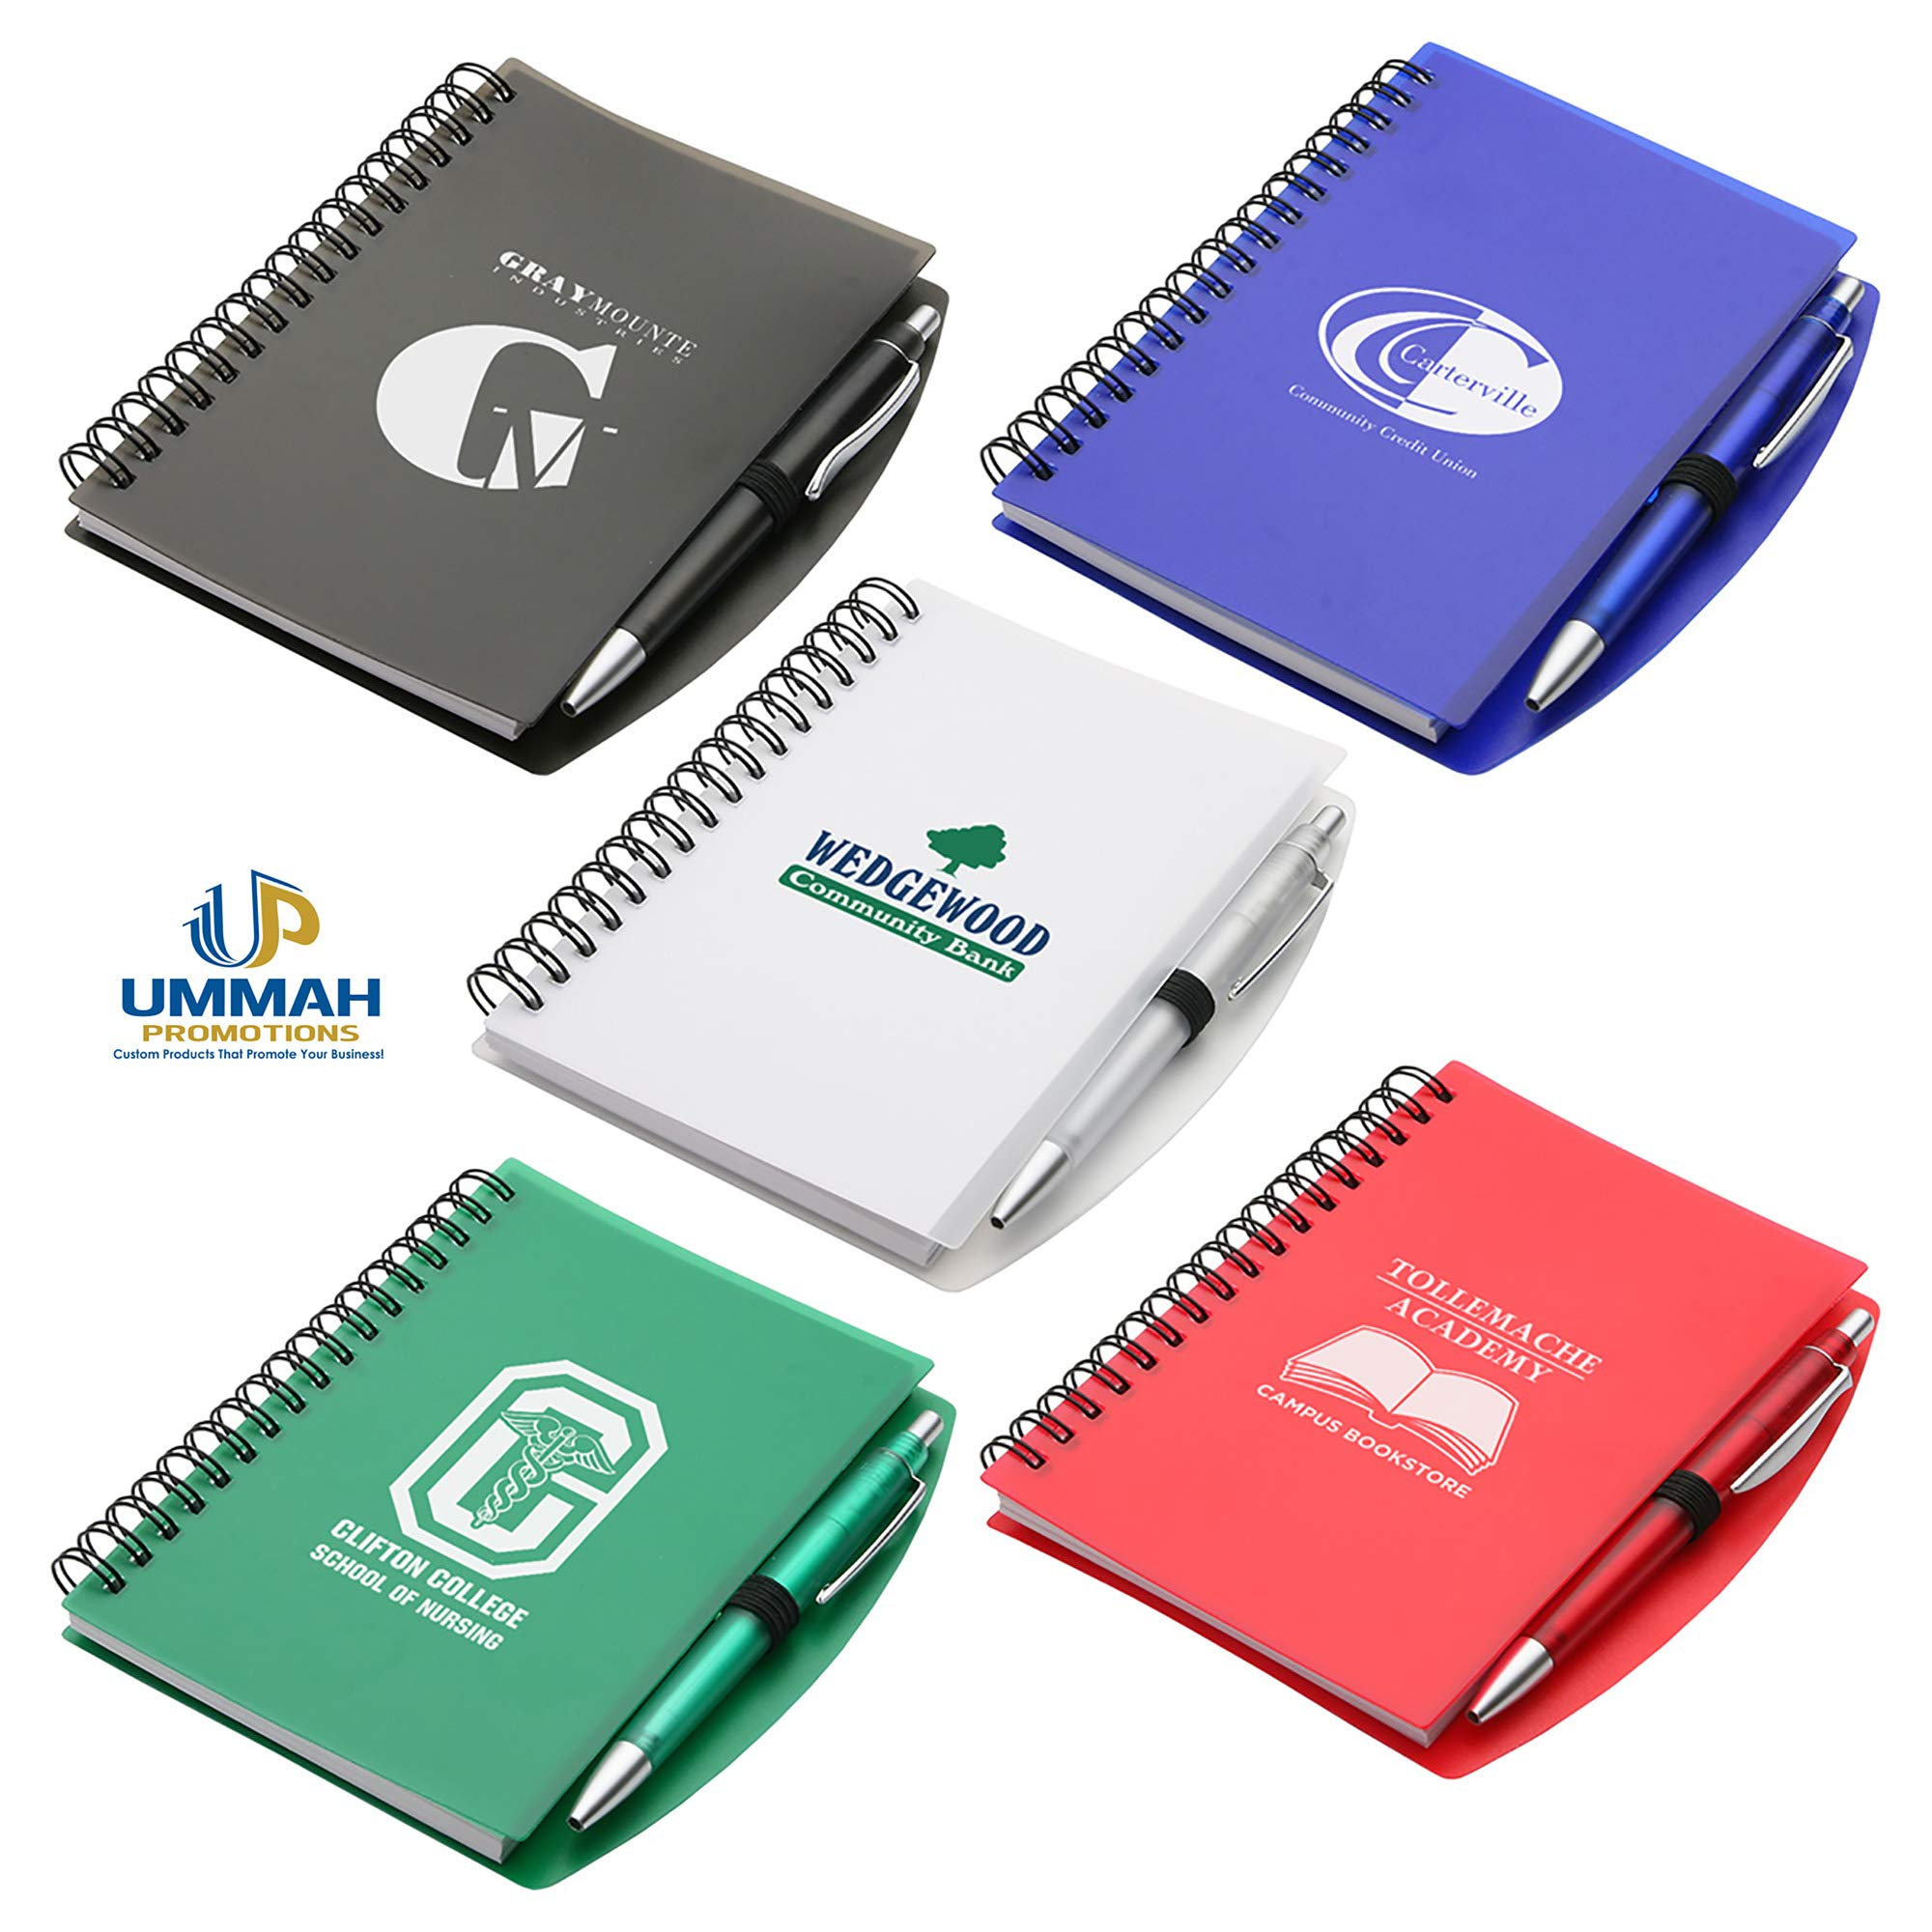 150 Personalized Hardcover Notebook & Pen Set Printed With Your Logo Or Message